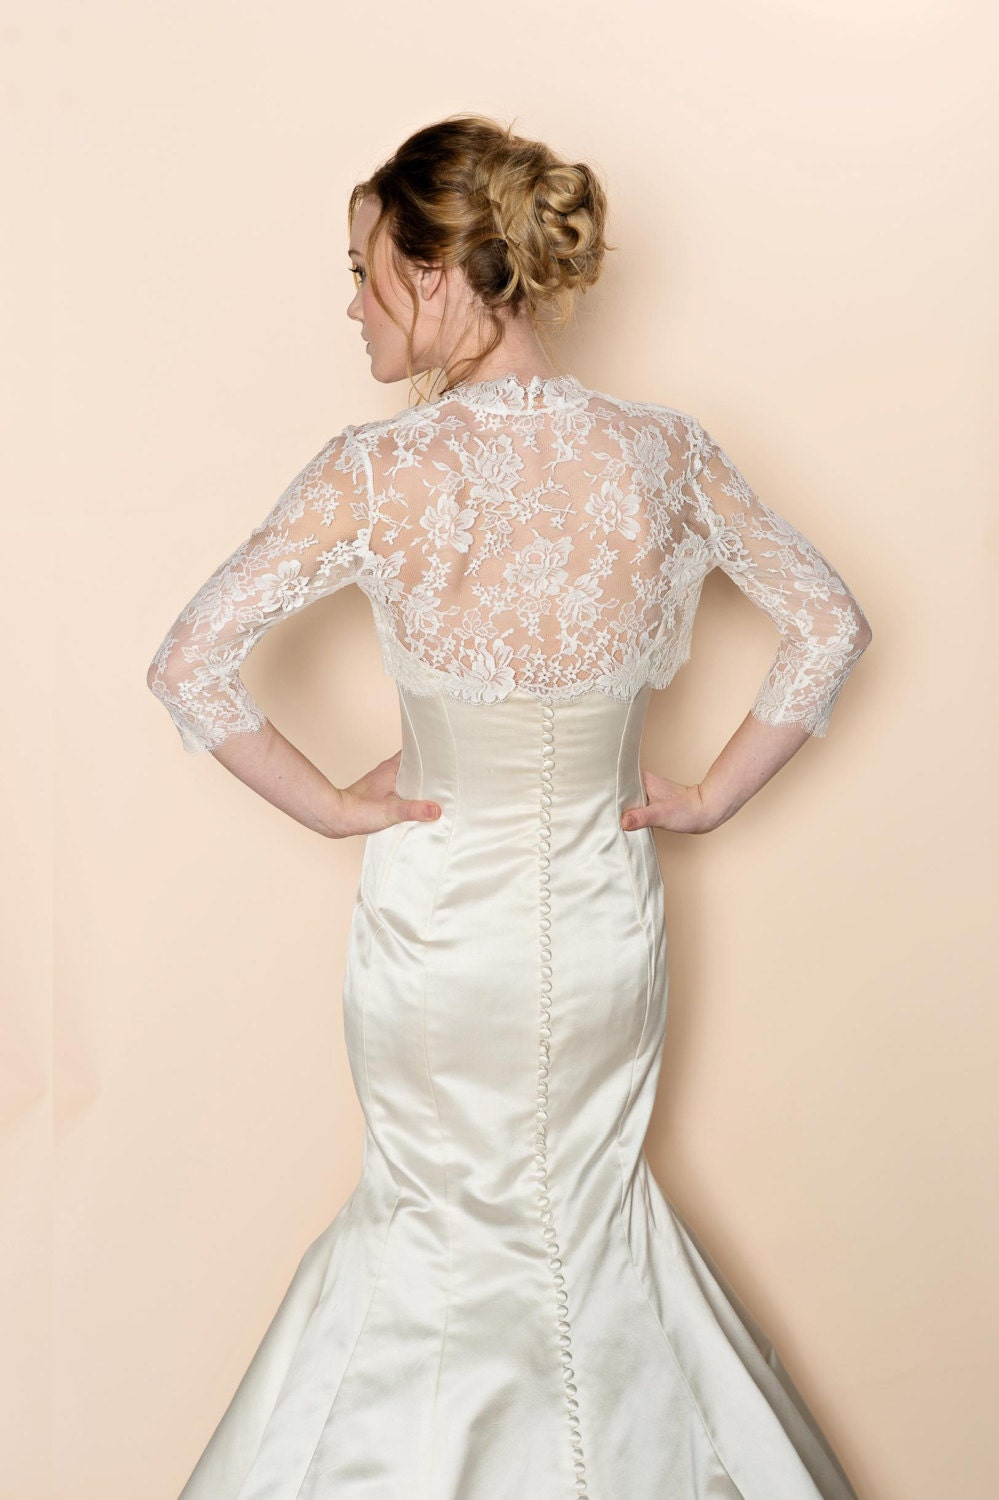 Celine bridal french lace bolero cover up shrug in ivory for Lace shrugs for wedding dresses